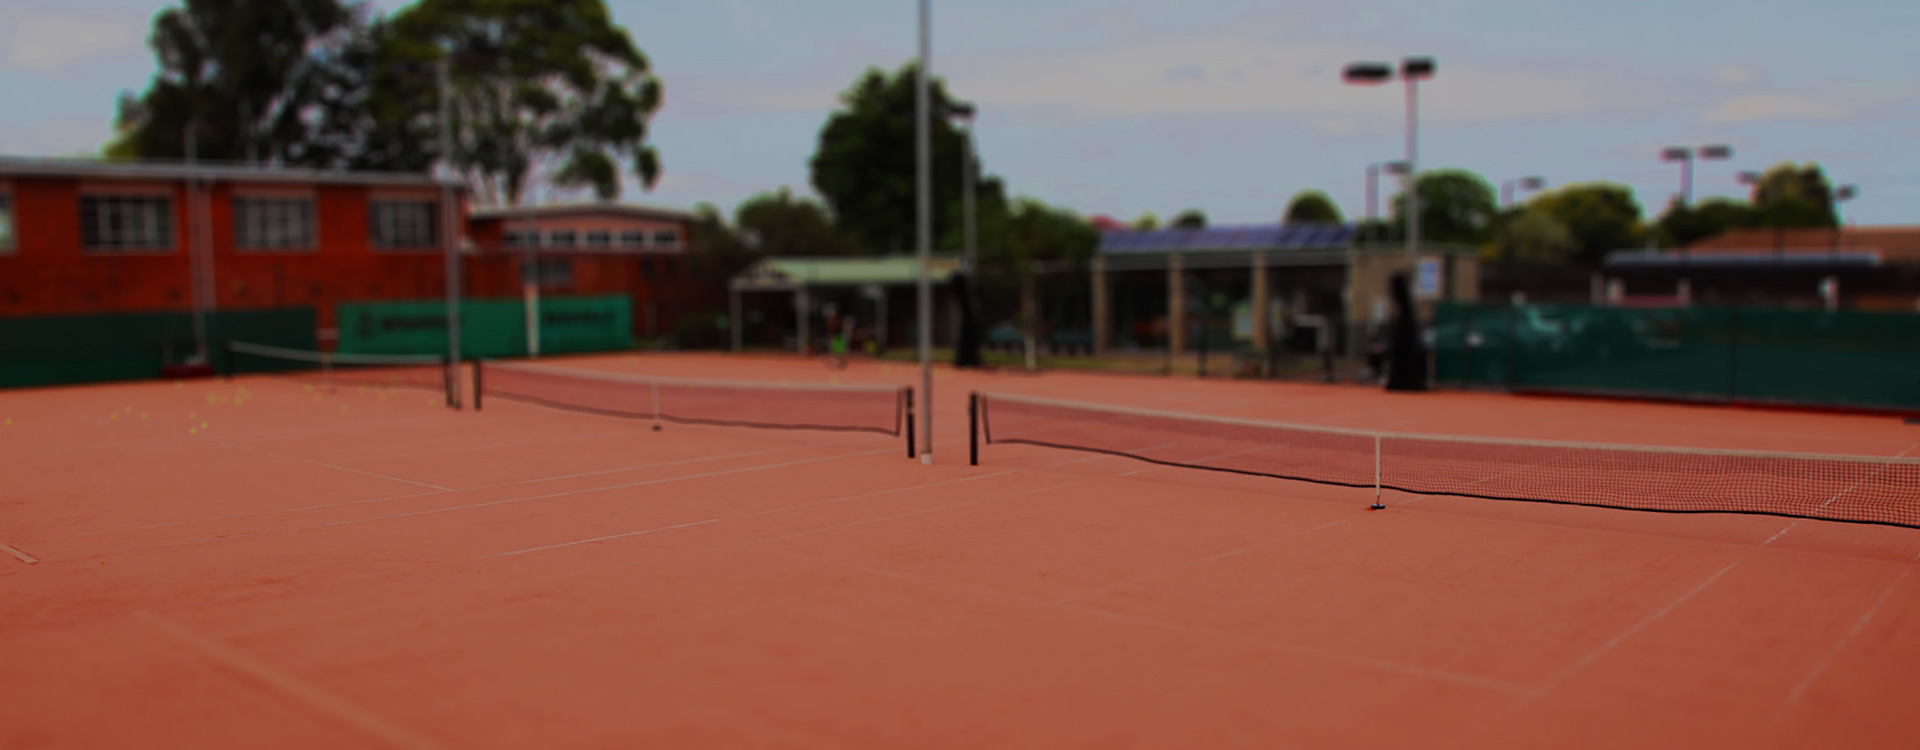 Clarinda Tennis Club front courts